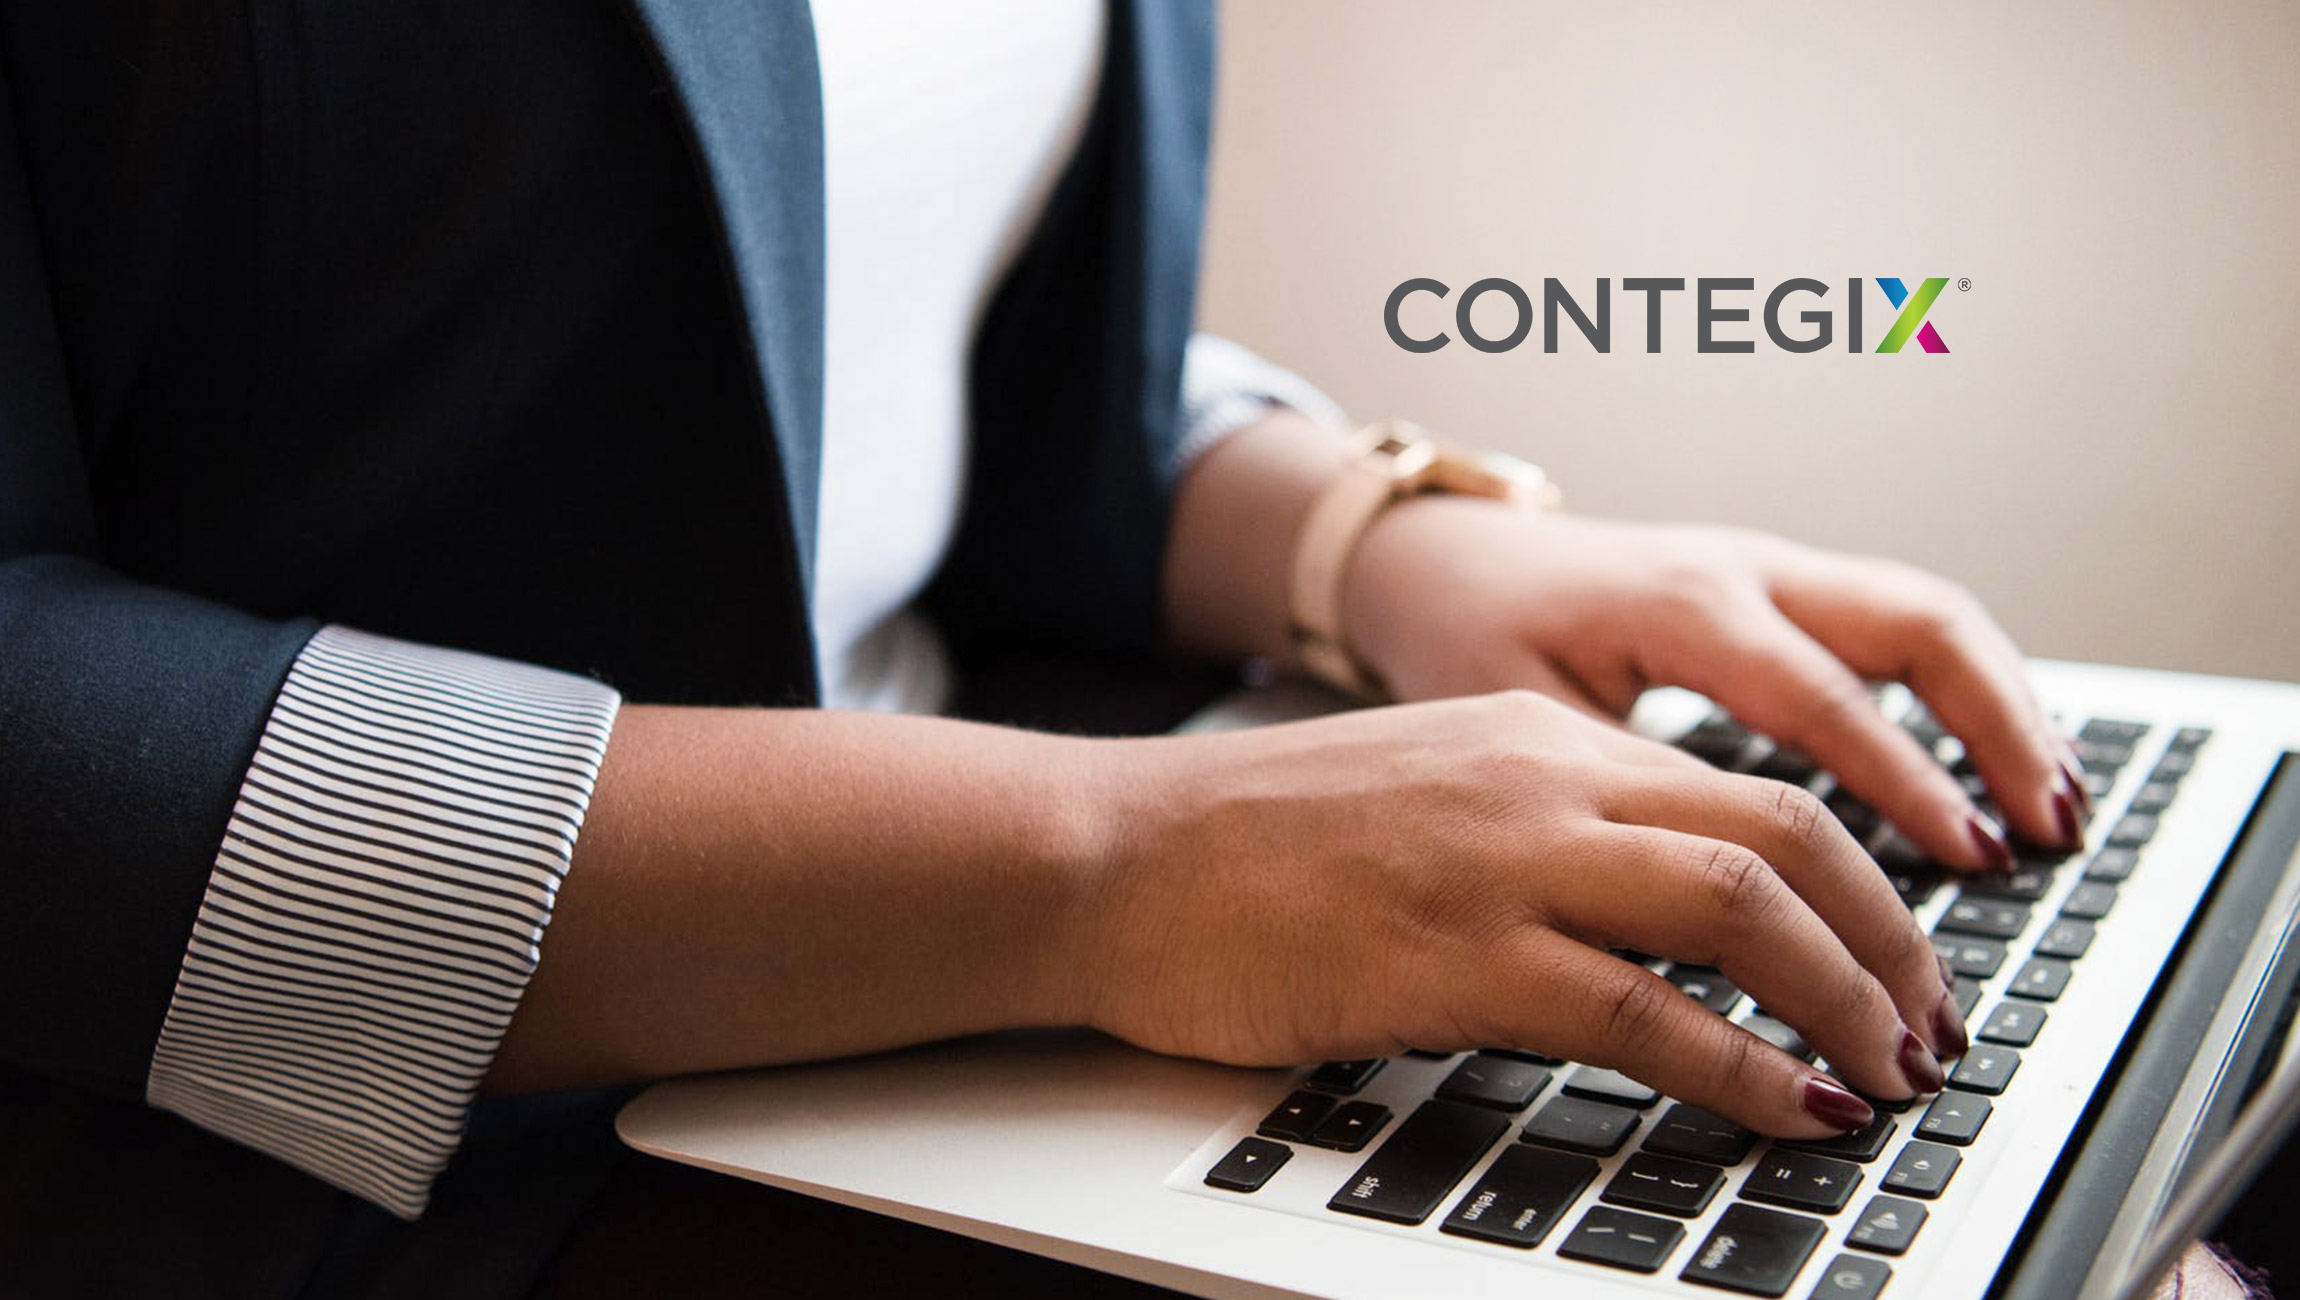 Contegix Appoints Partha Teerdhala as Chief Technology Officer